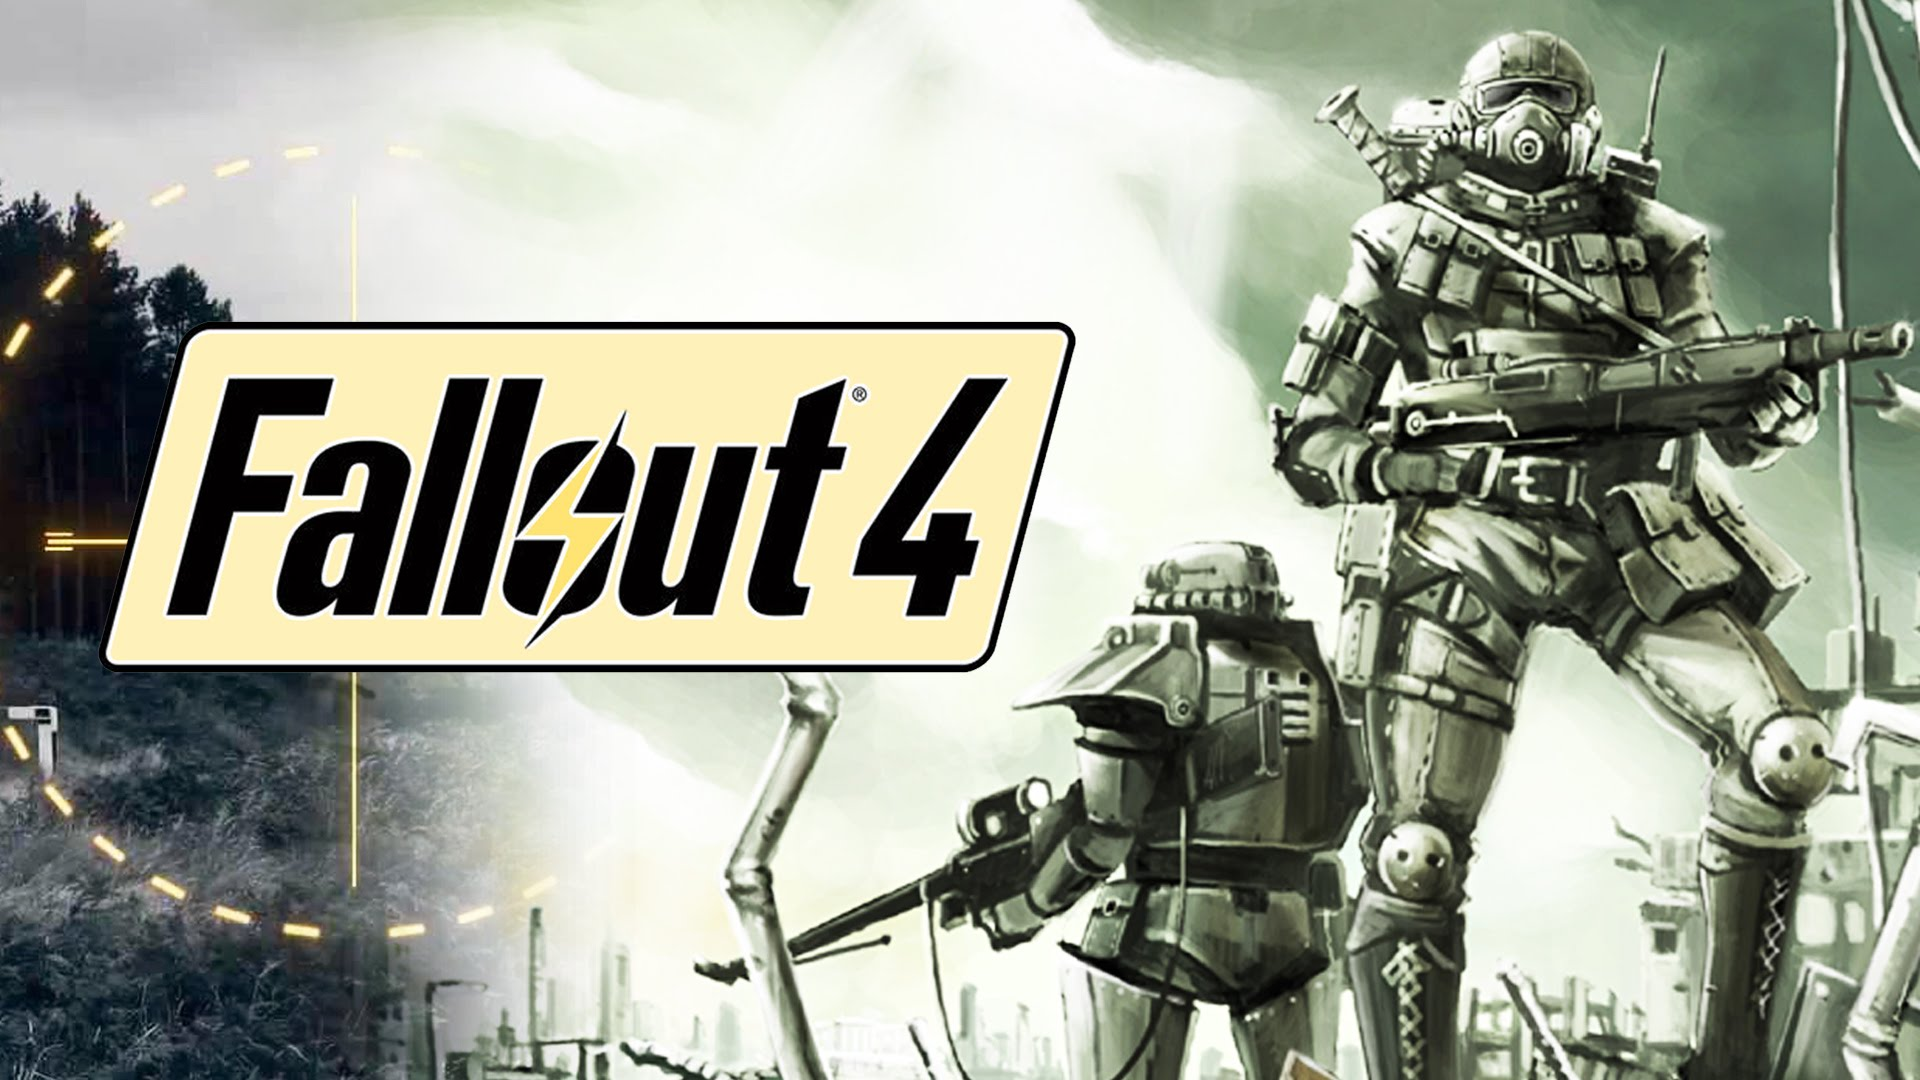 5 Things Every Fallout 4 Gamer Should Know